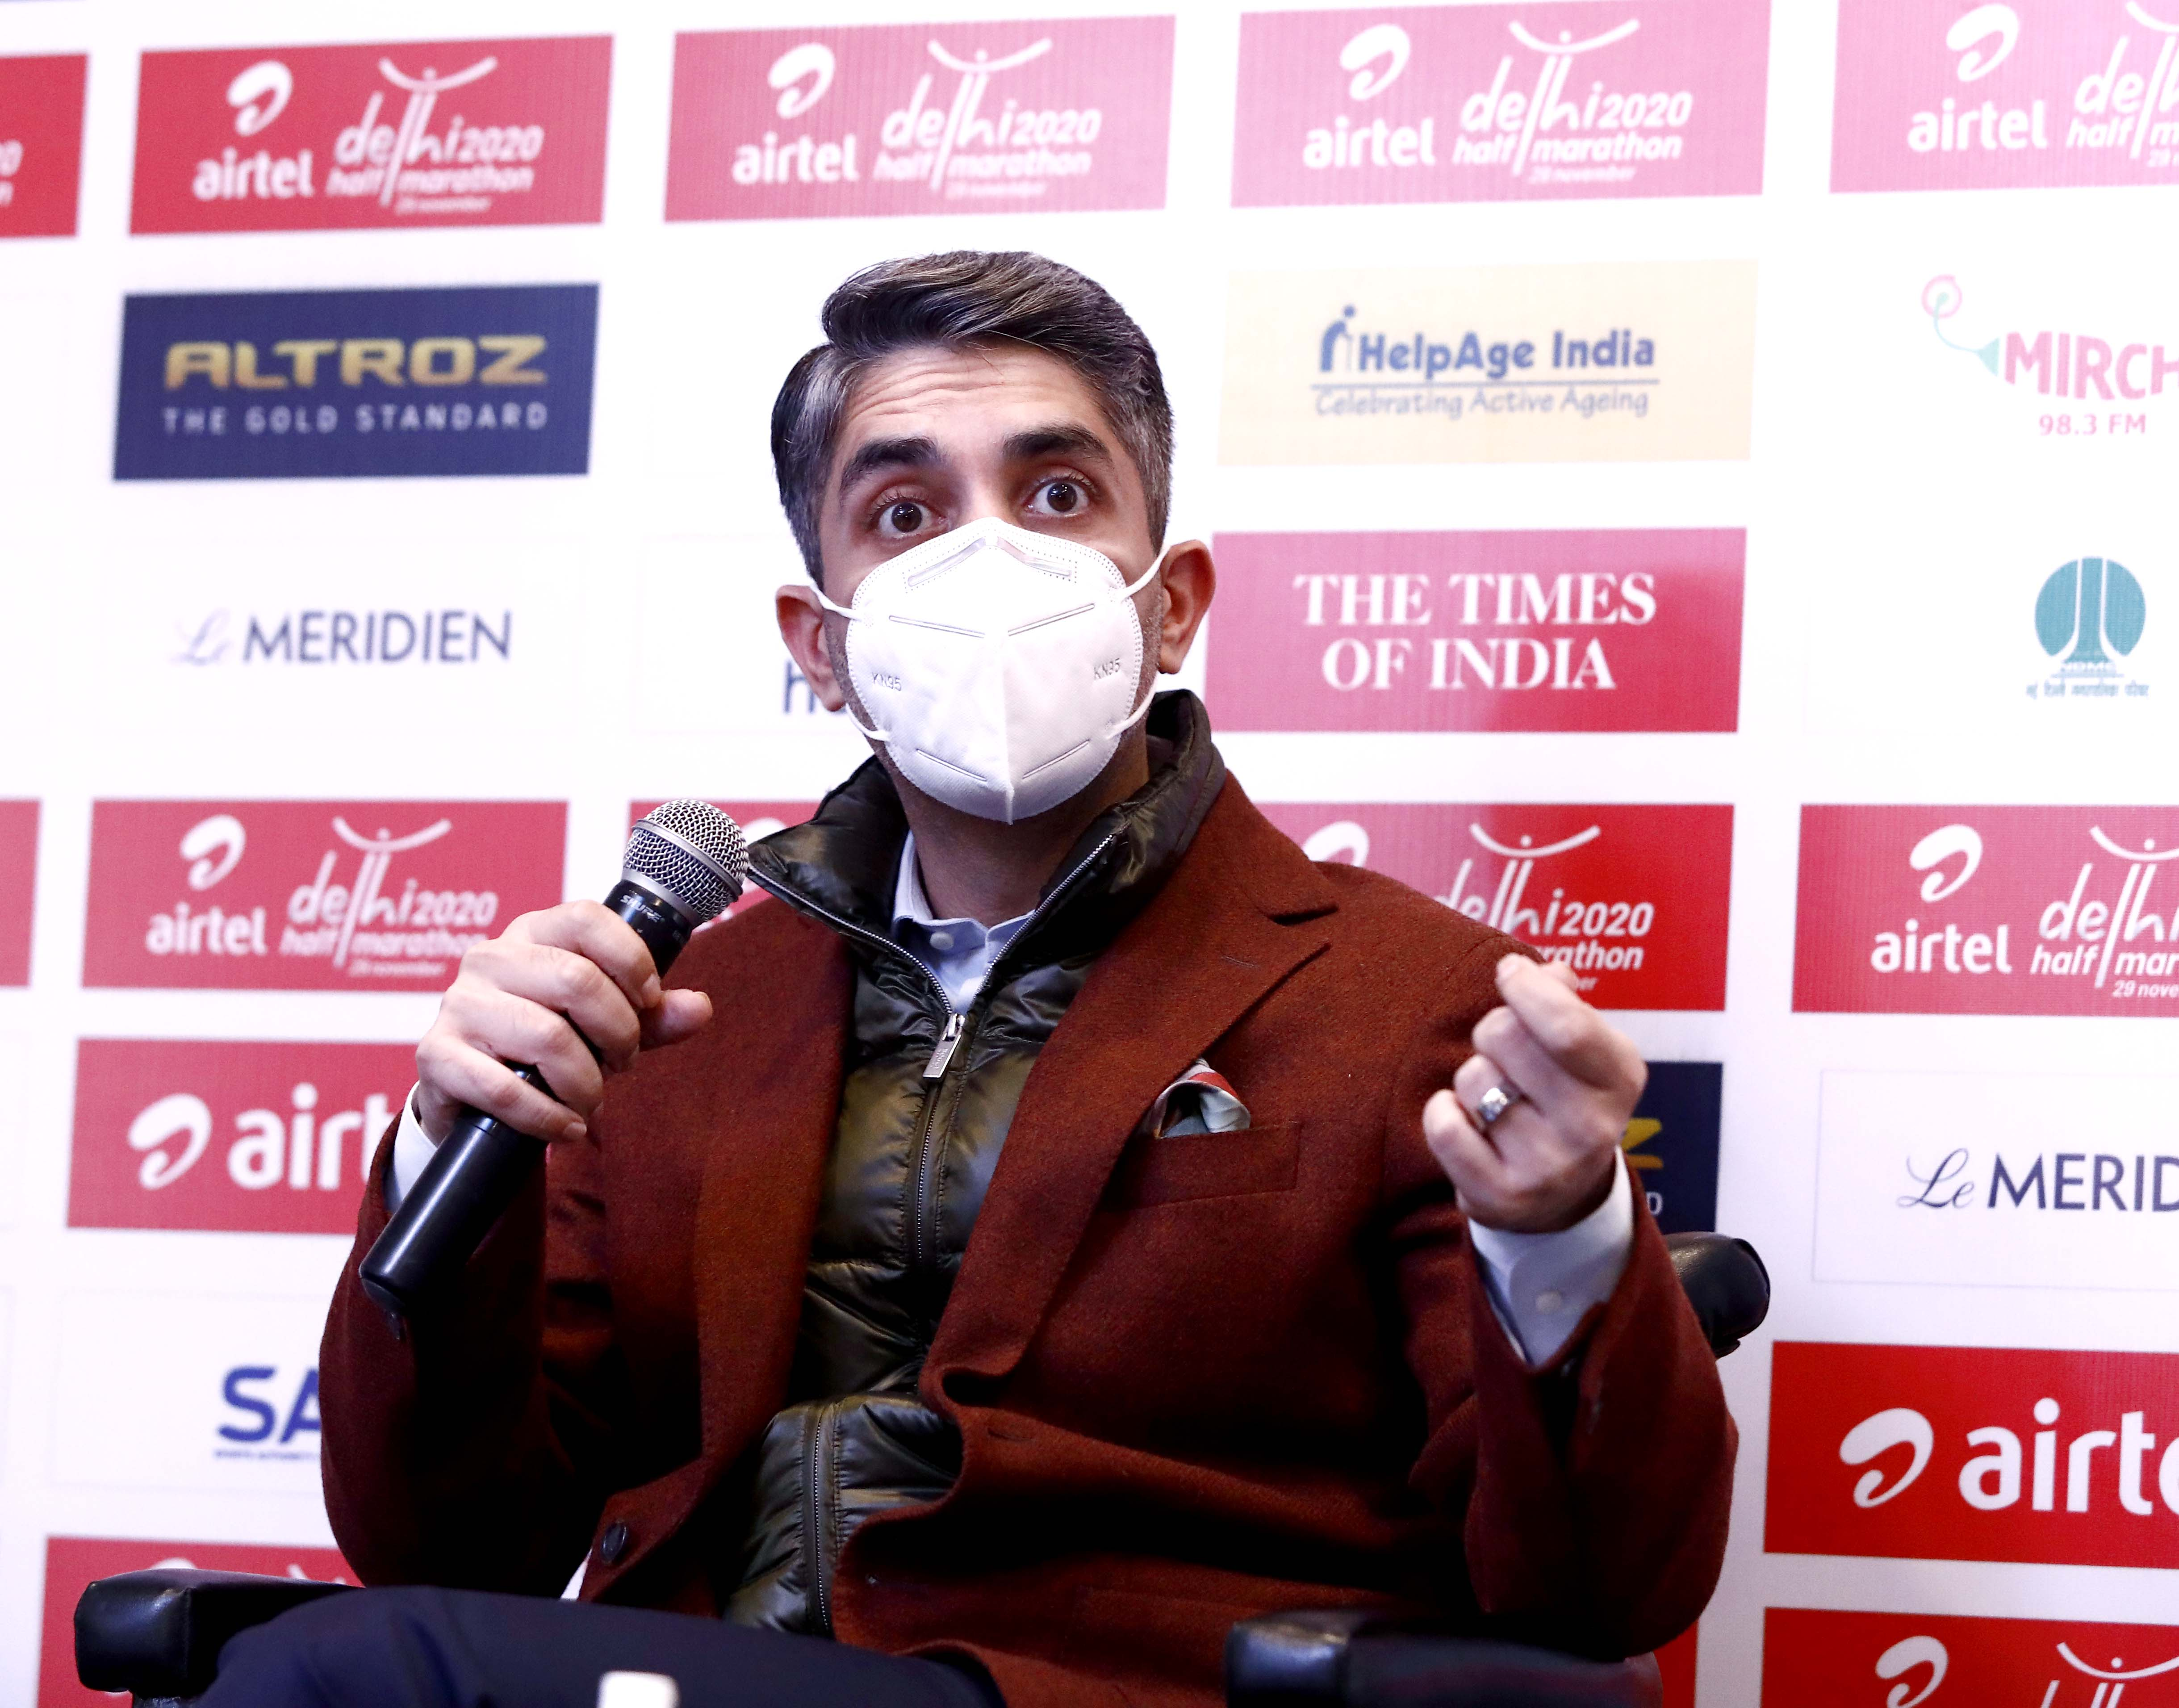 Airtel Delhi Half Marathon 2020 will unite the people of India - Abhinav Bindra